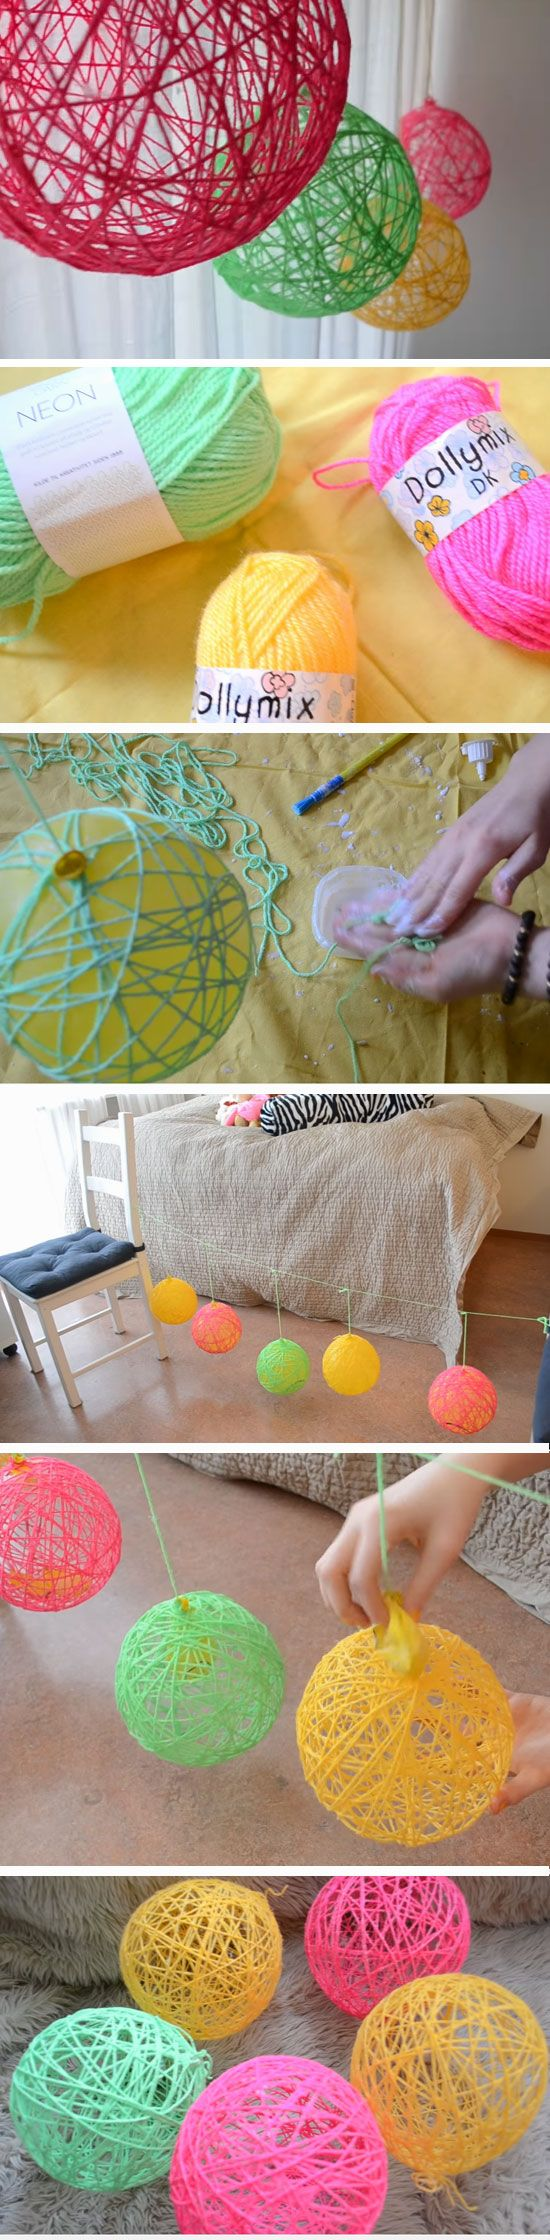 Easy Diy Spring Bedroom Decorating Ideas On A Budget Spring Diy Diy And Crafts Sewing Summer Crafts For Kids